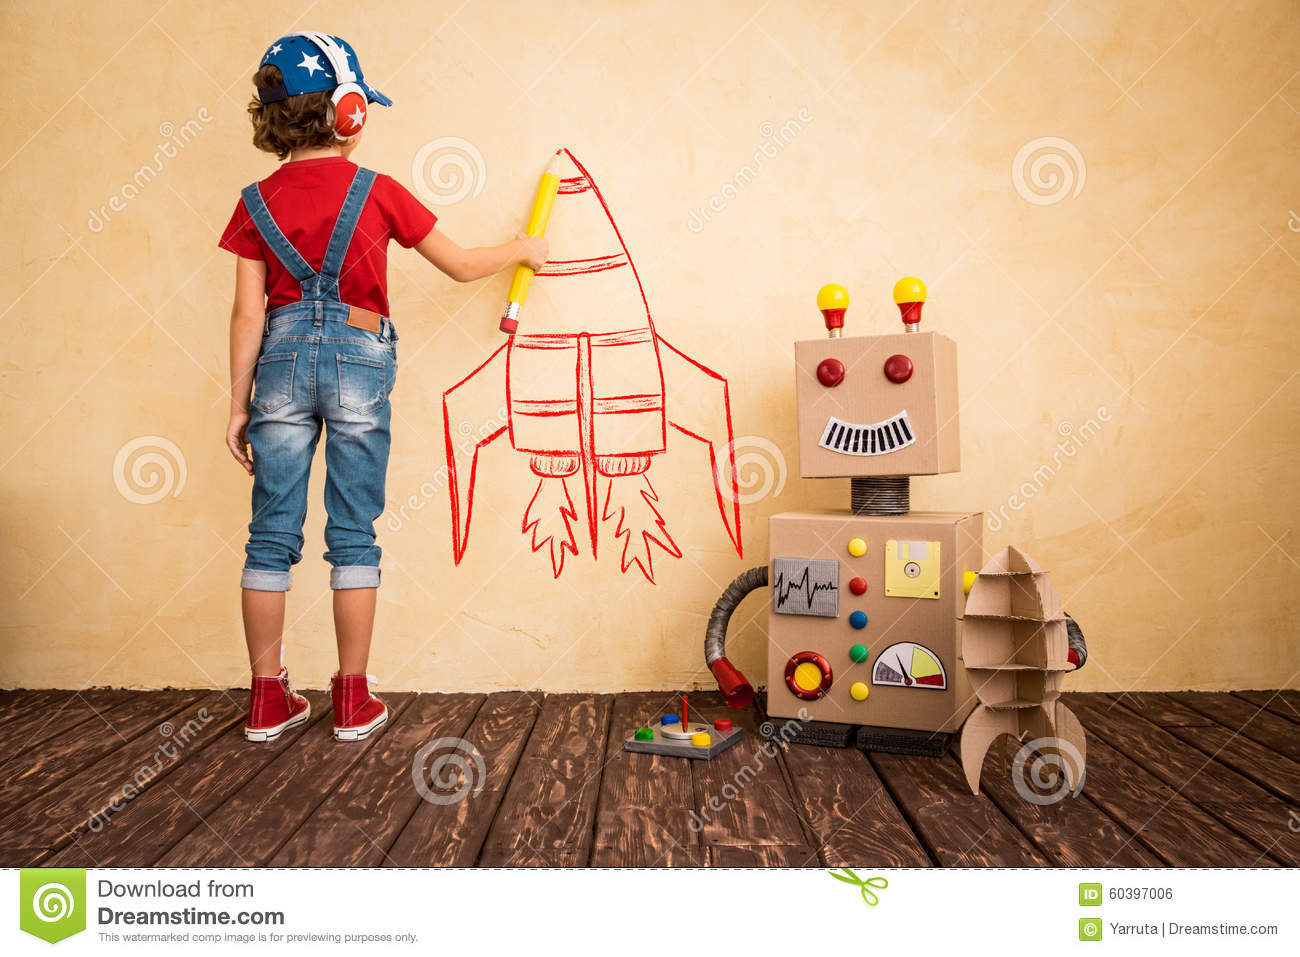 Happy child playing with toy robot